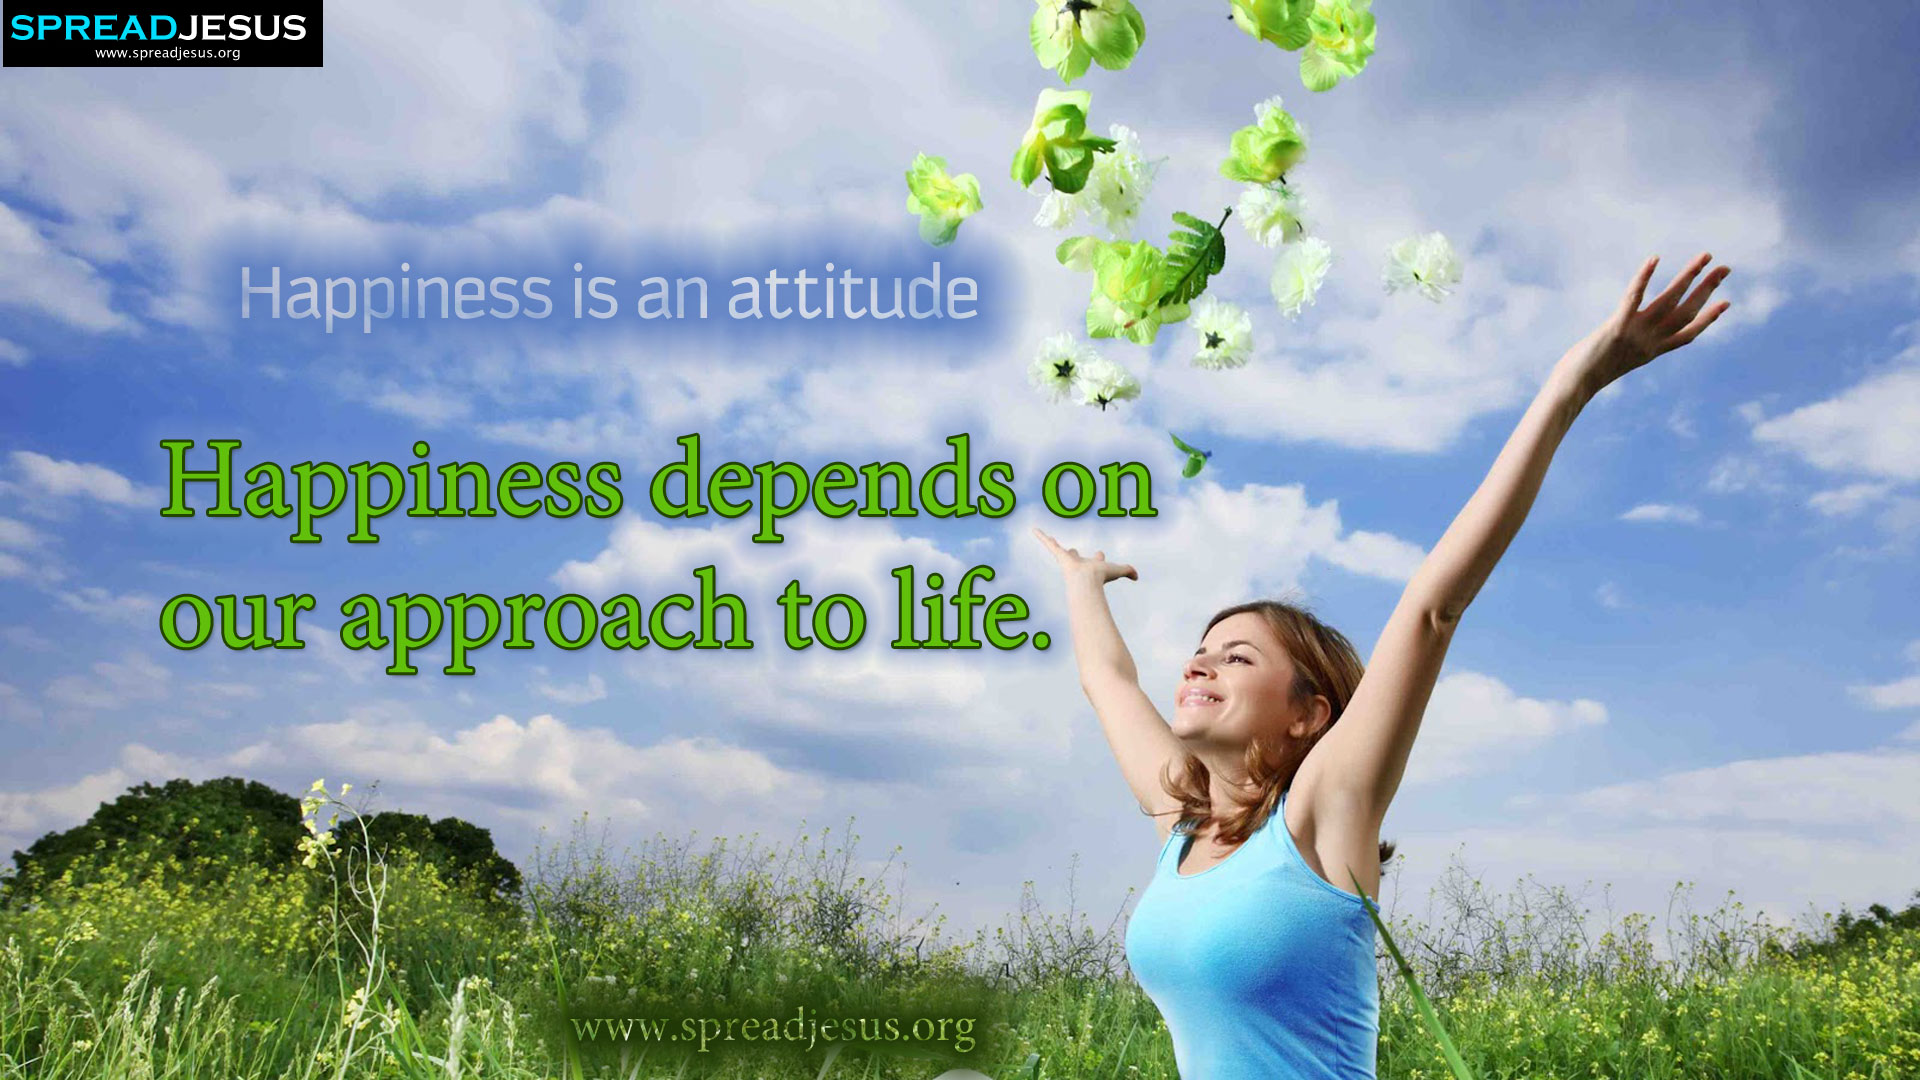 Attitude Love Wallpaper In Hd : Happiness quotes : Happiness Hd wallpapers : Happiness Fb covers